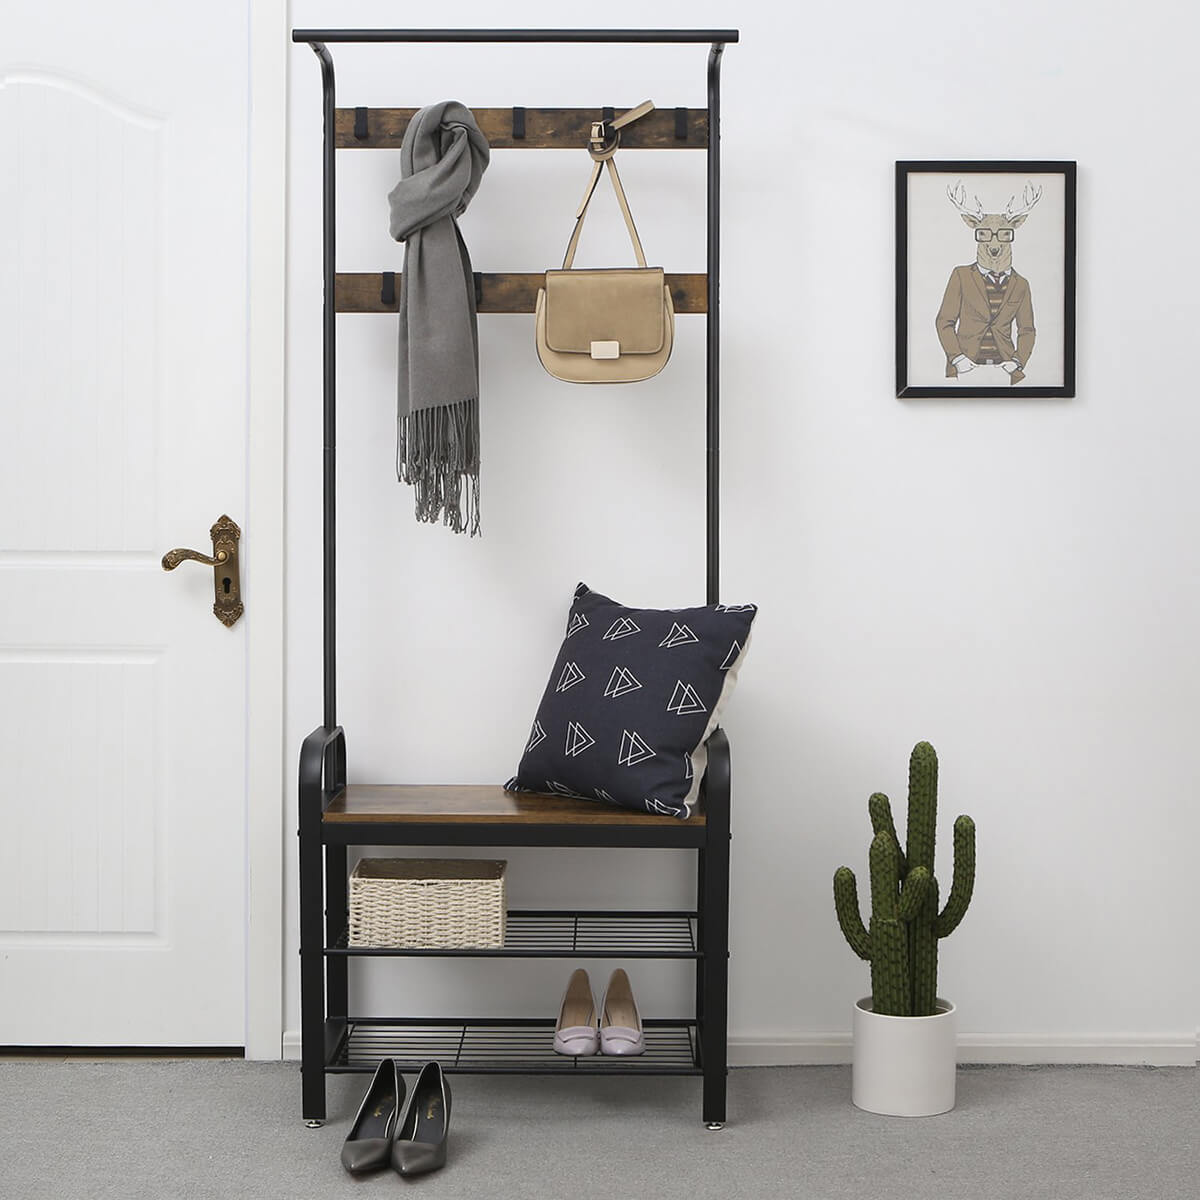 Utilitarian Three-in-One Coat Rack and Bench